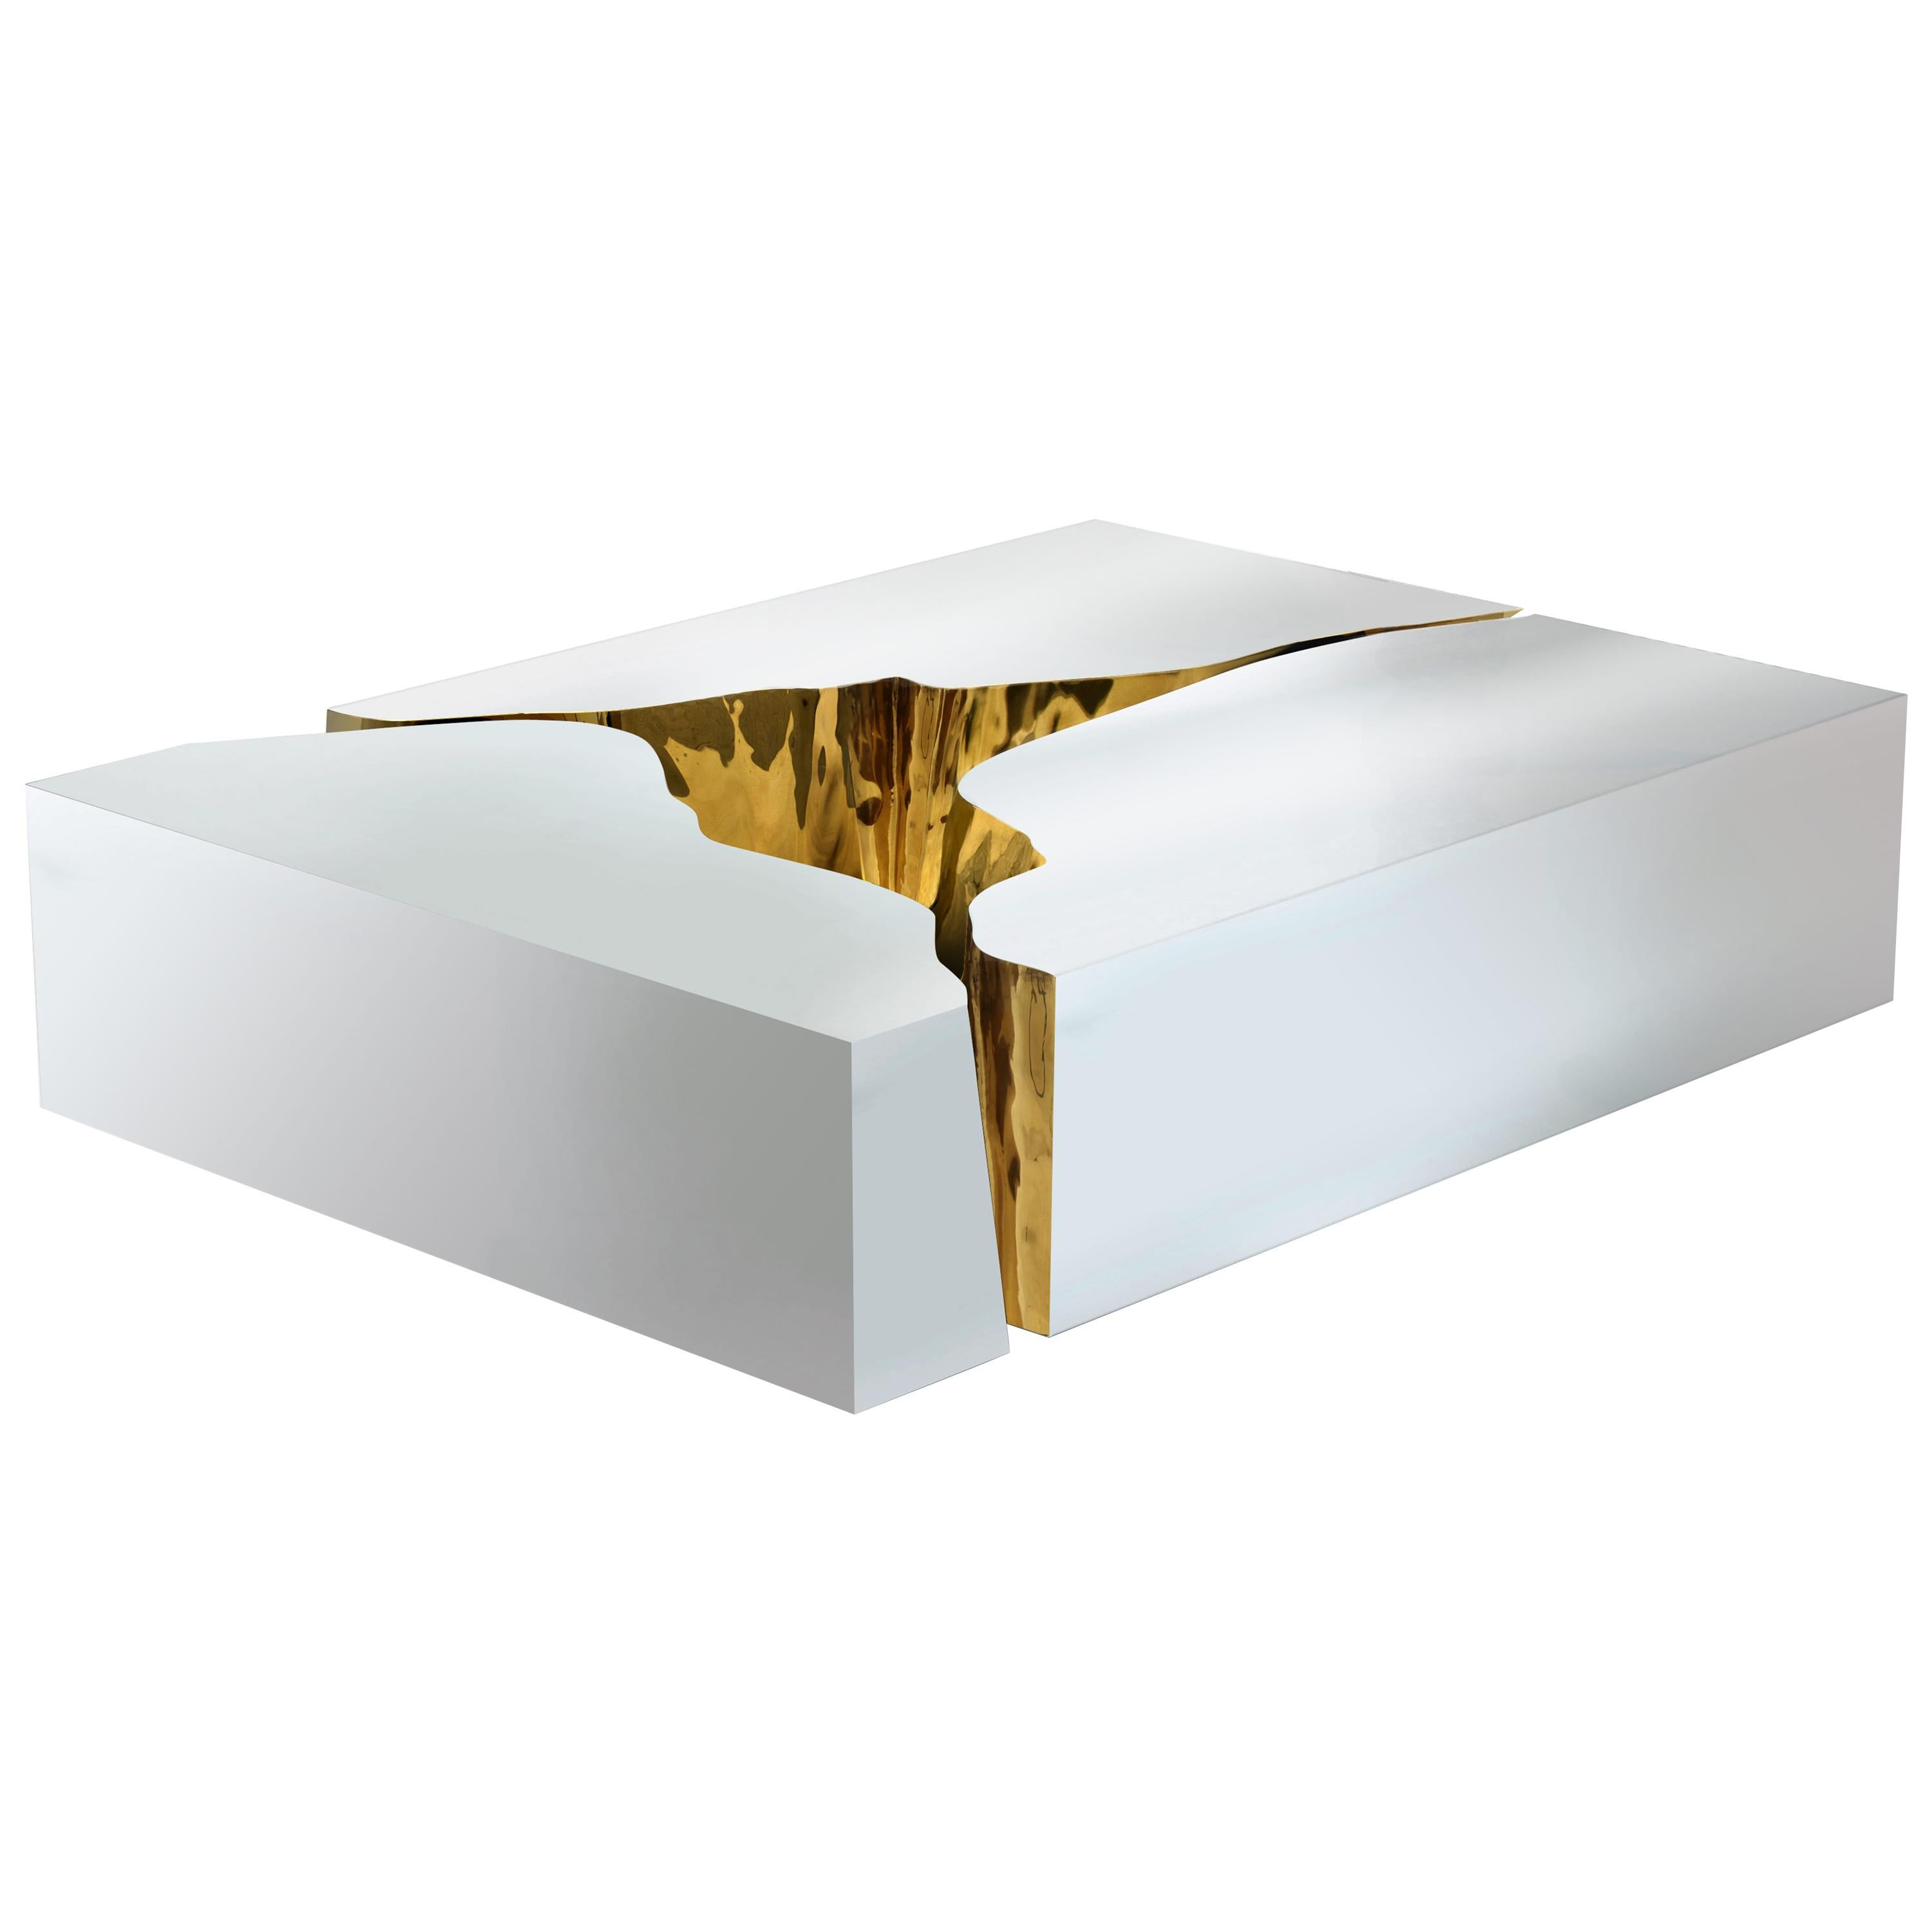 Lapiaz Coffee Table with Black or White Finish and Brass Detail